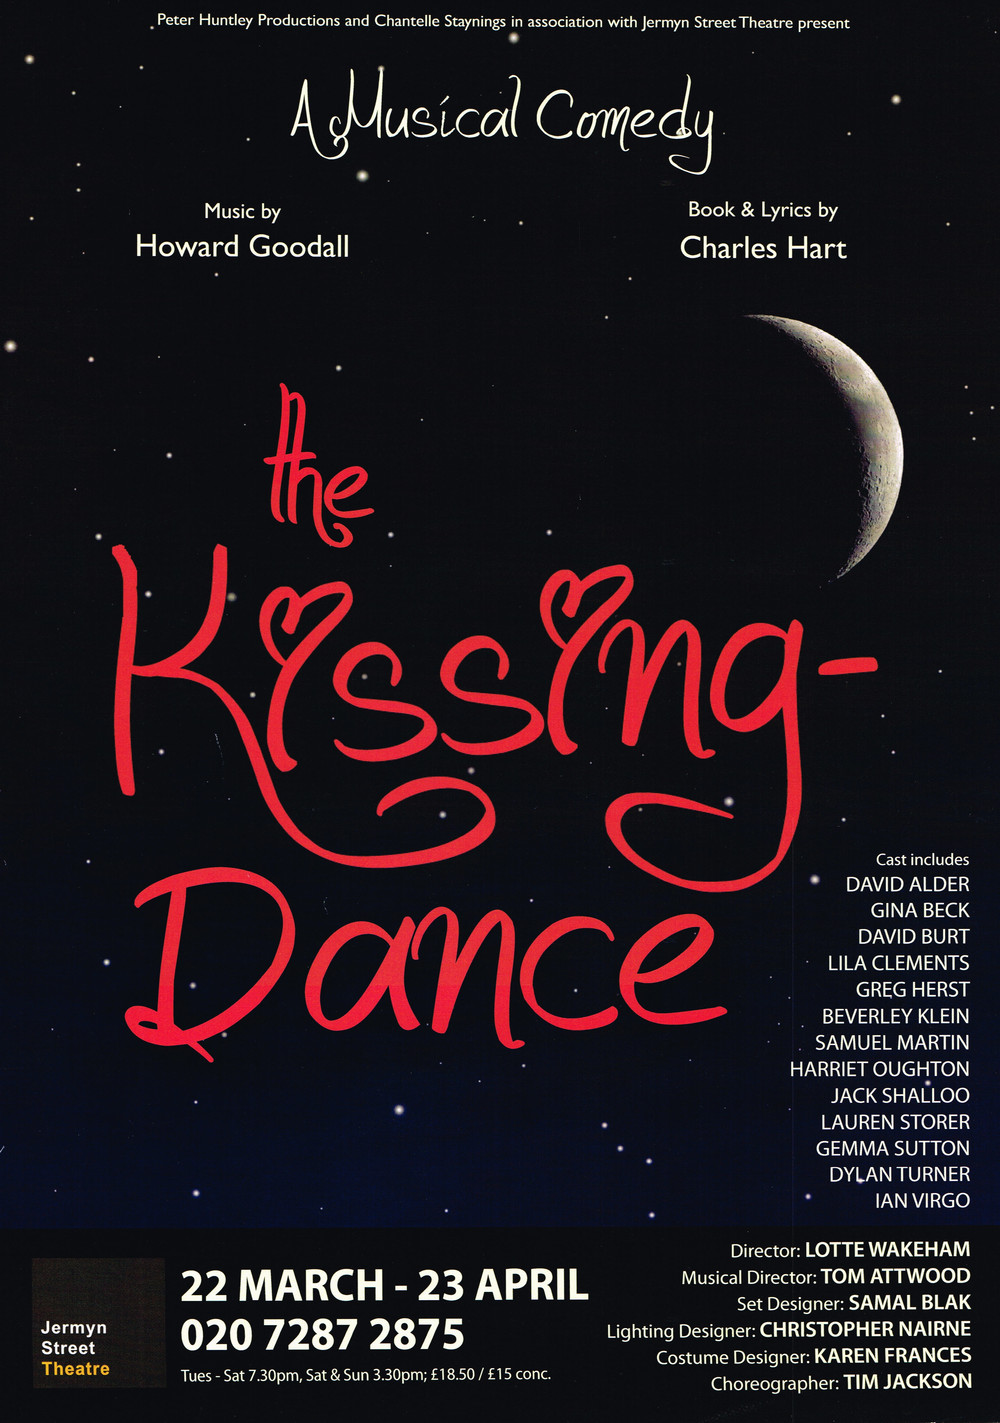 The Kissing-Dance.jpg